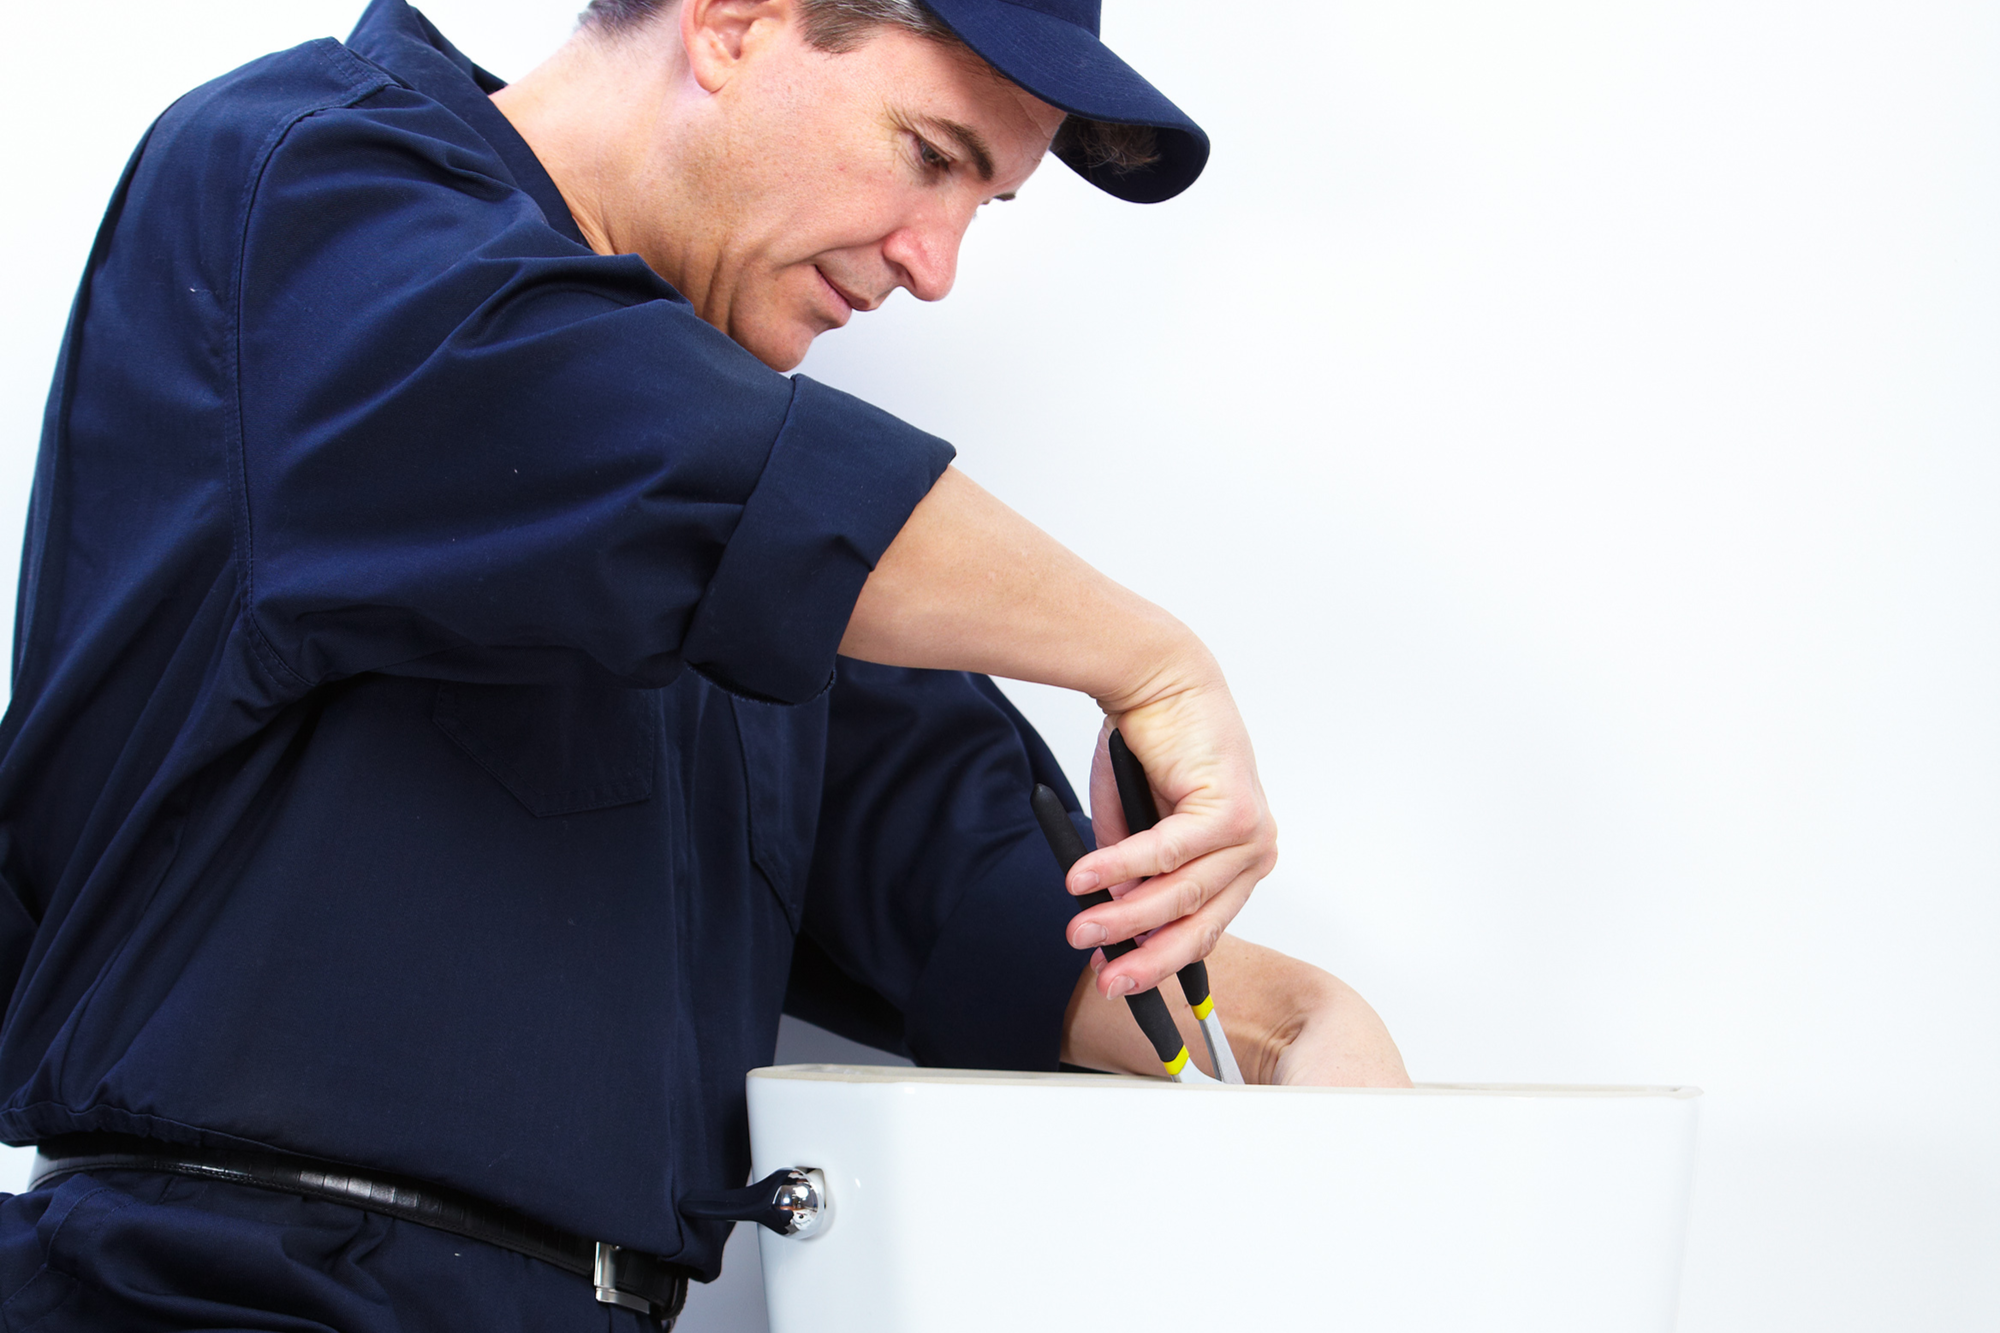 Septic Installers and Cleaners Insurance Massachusetts